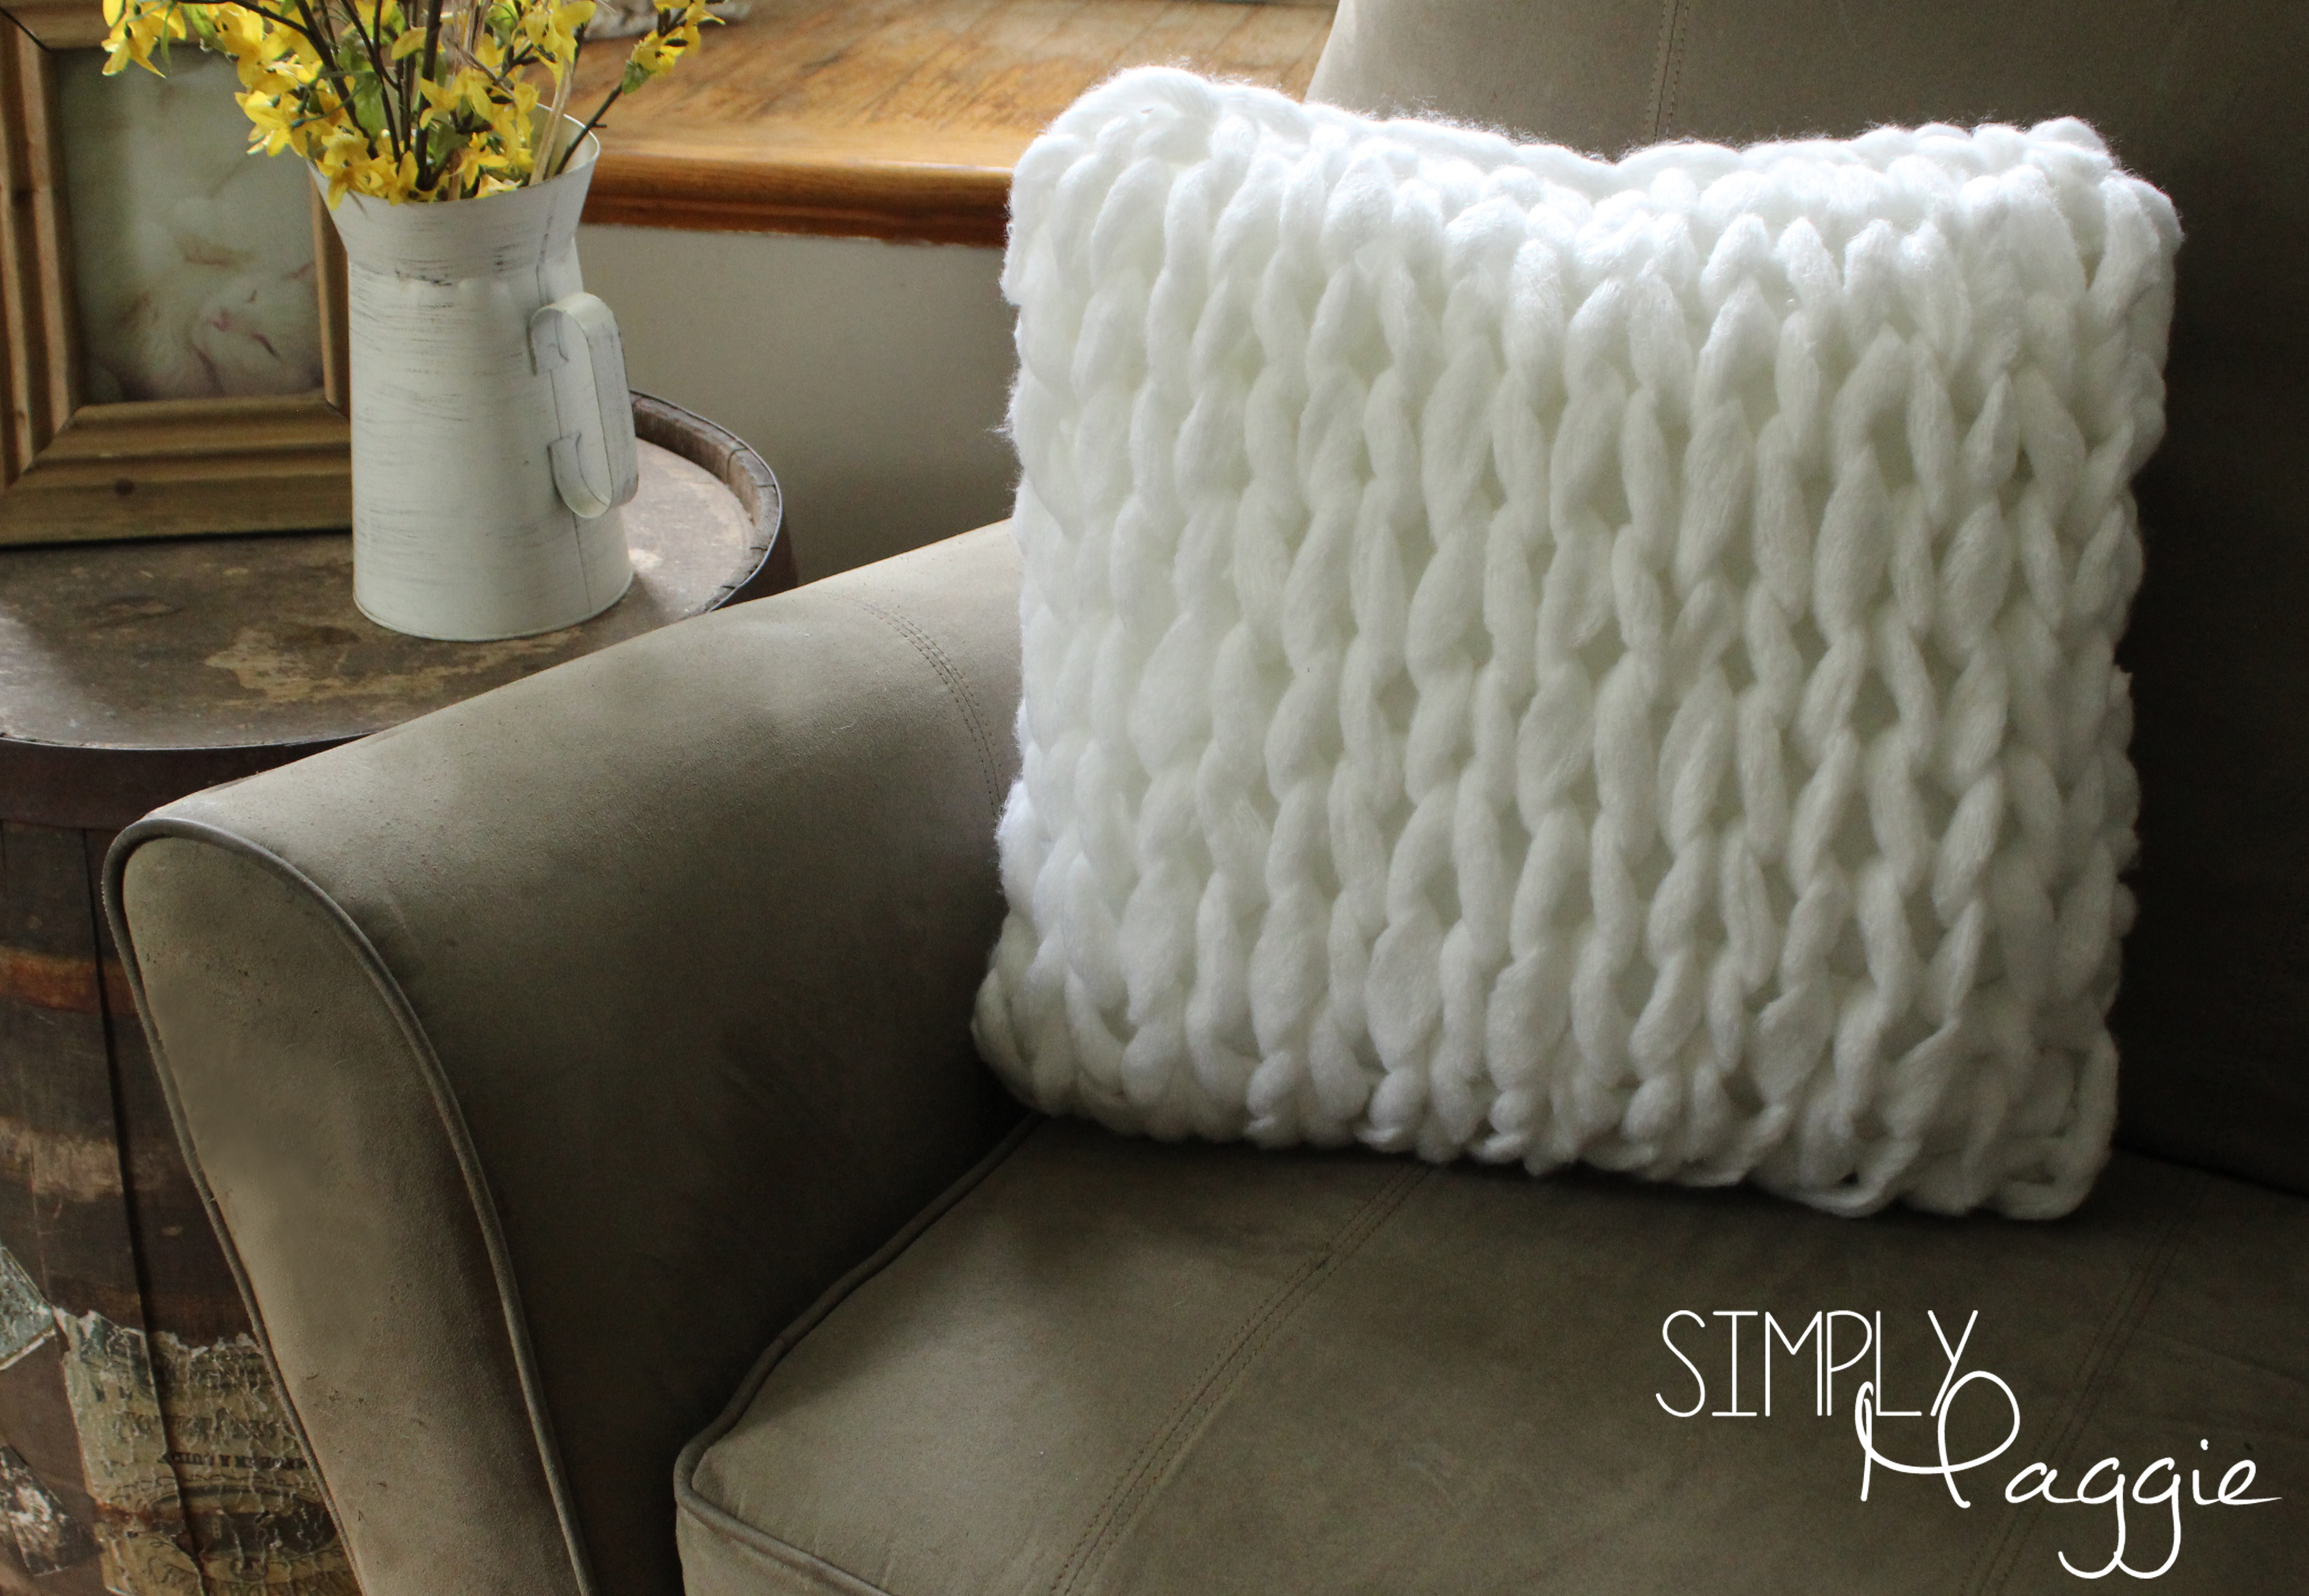 Free Cushion Knitting Patterns One Hour Arm Knit Pillow Pattern Simply Maggie Simplymaggie